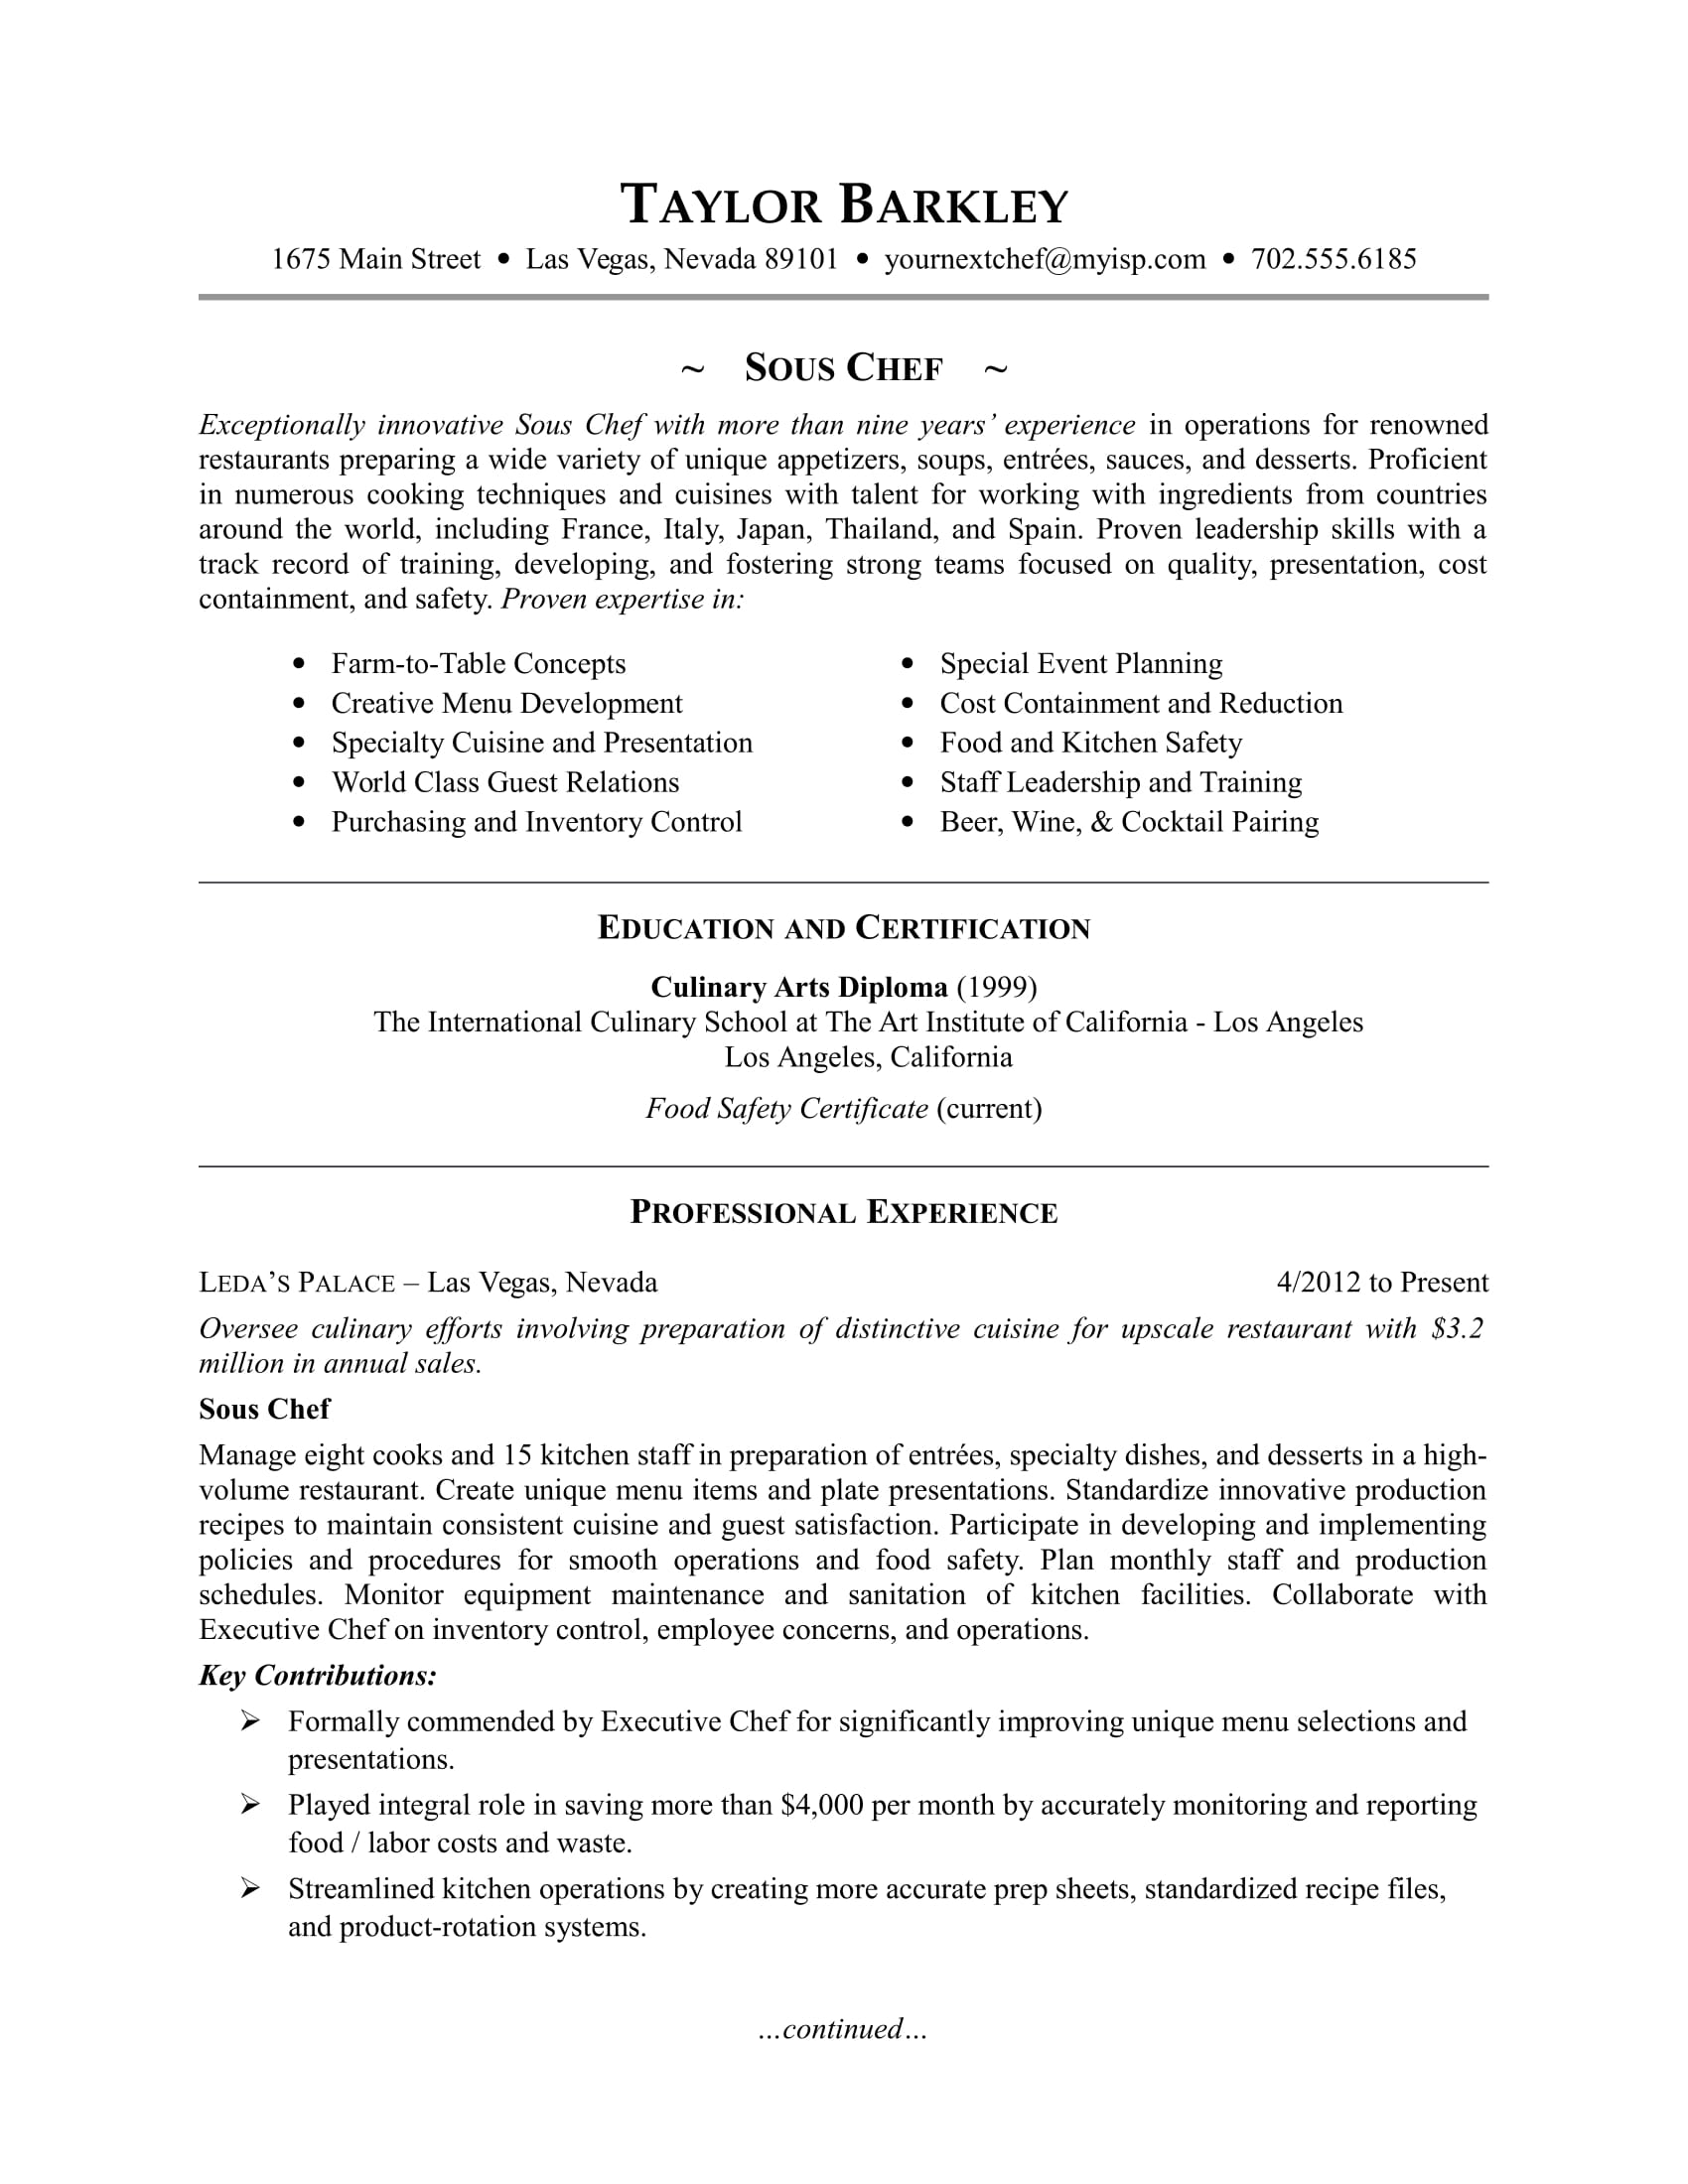 Sous Chef Resume Sample   Monster